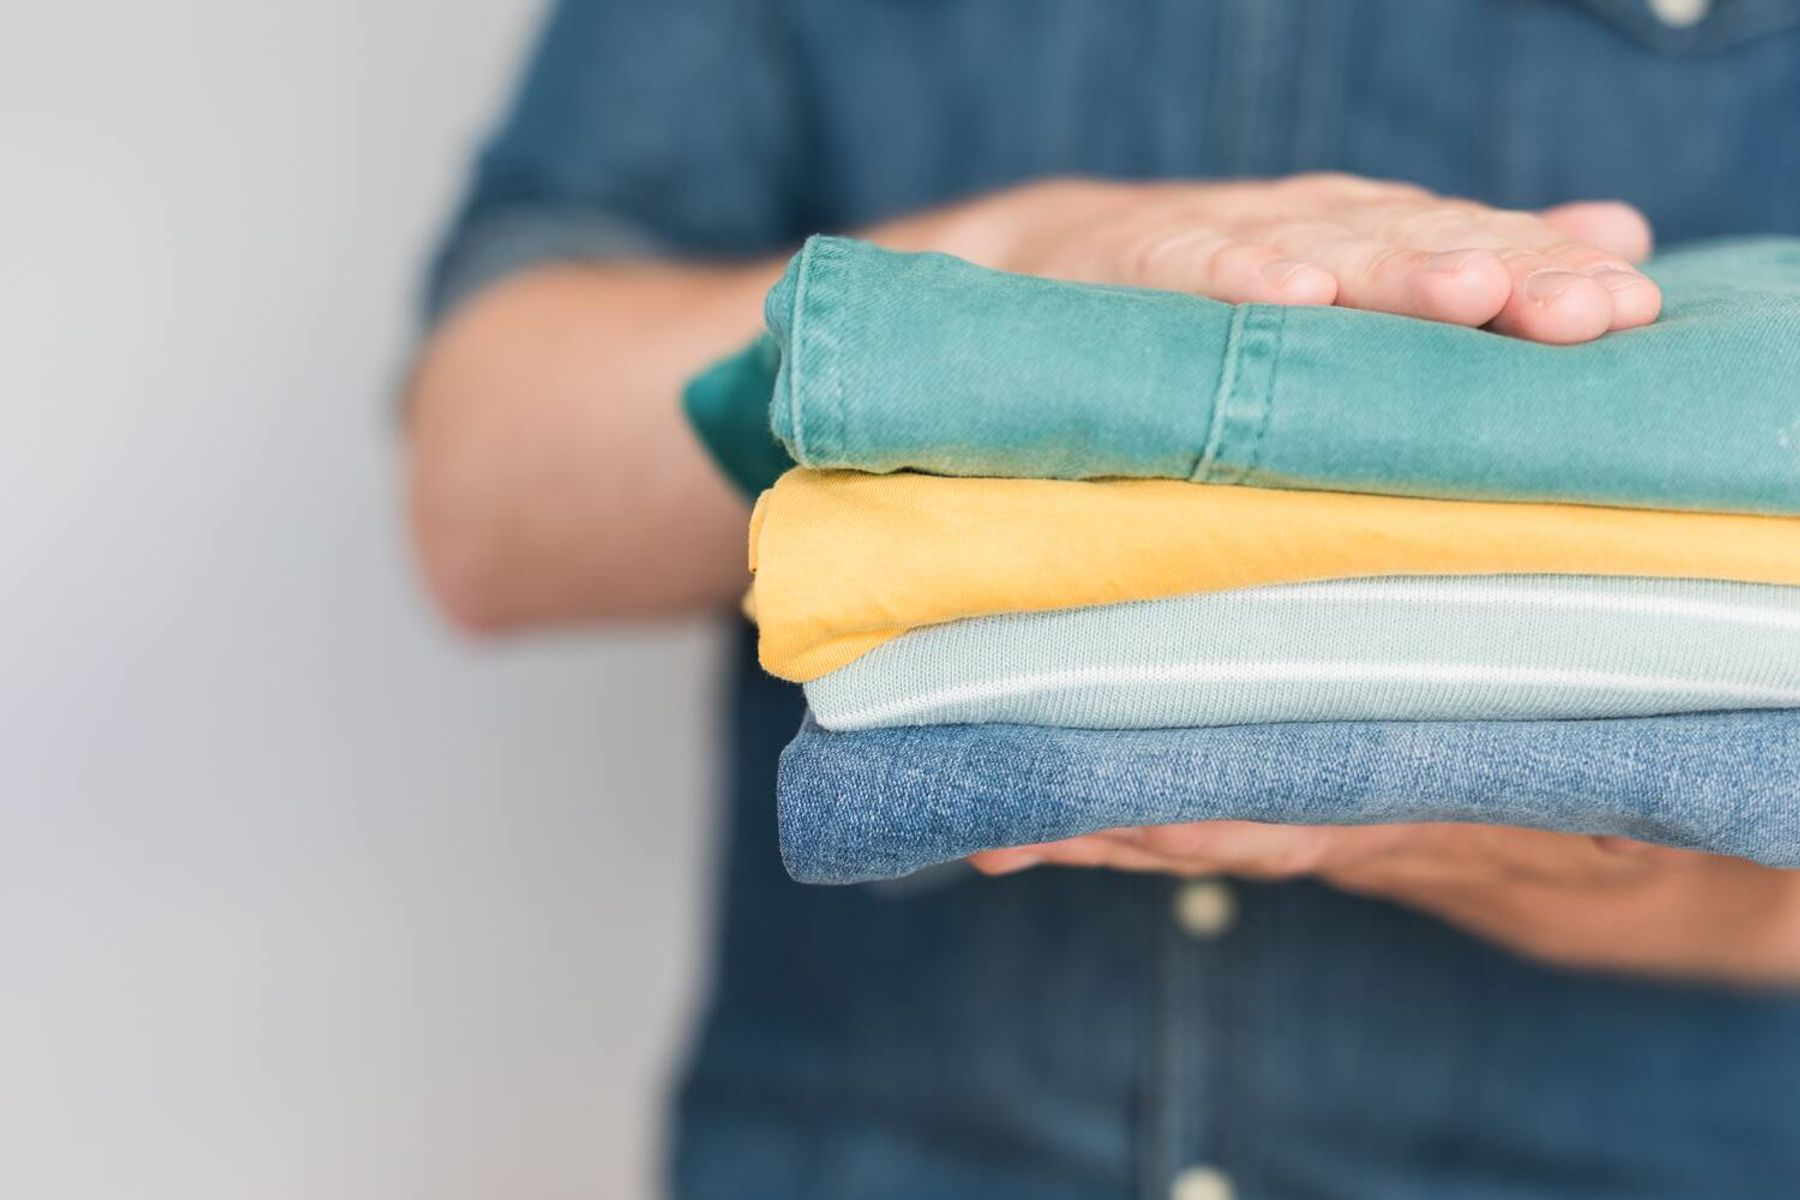 A person holding a stack of folded clothing